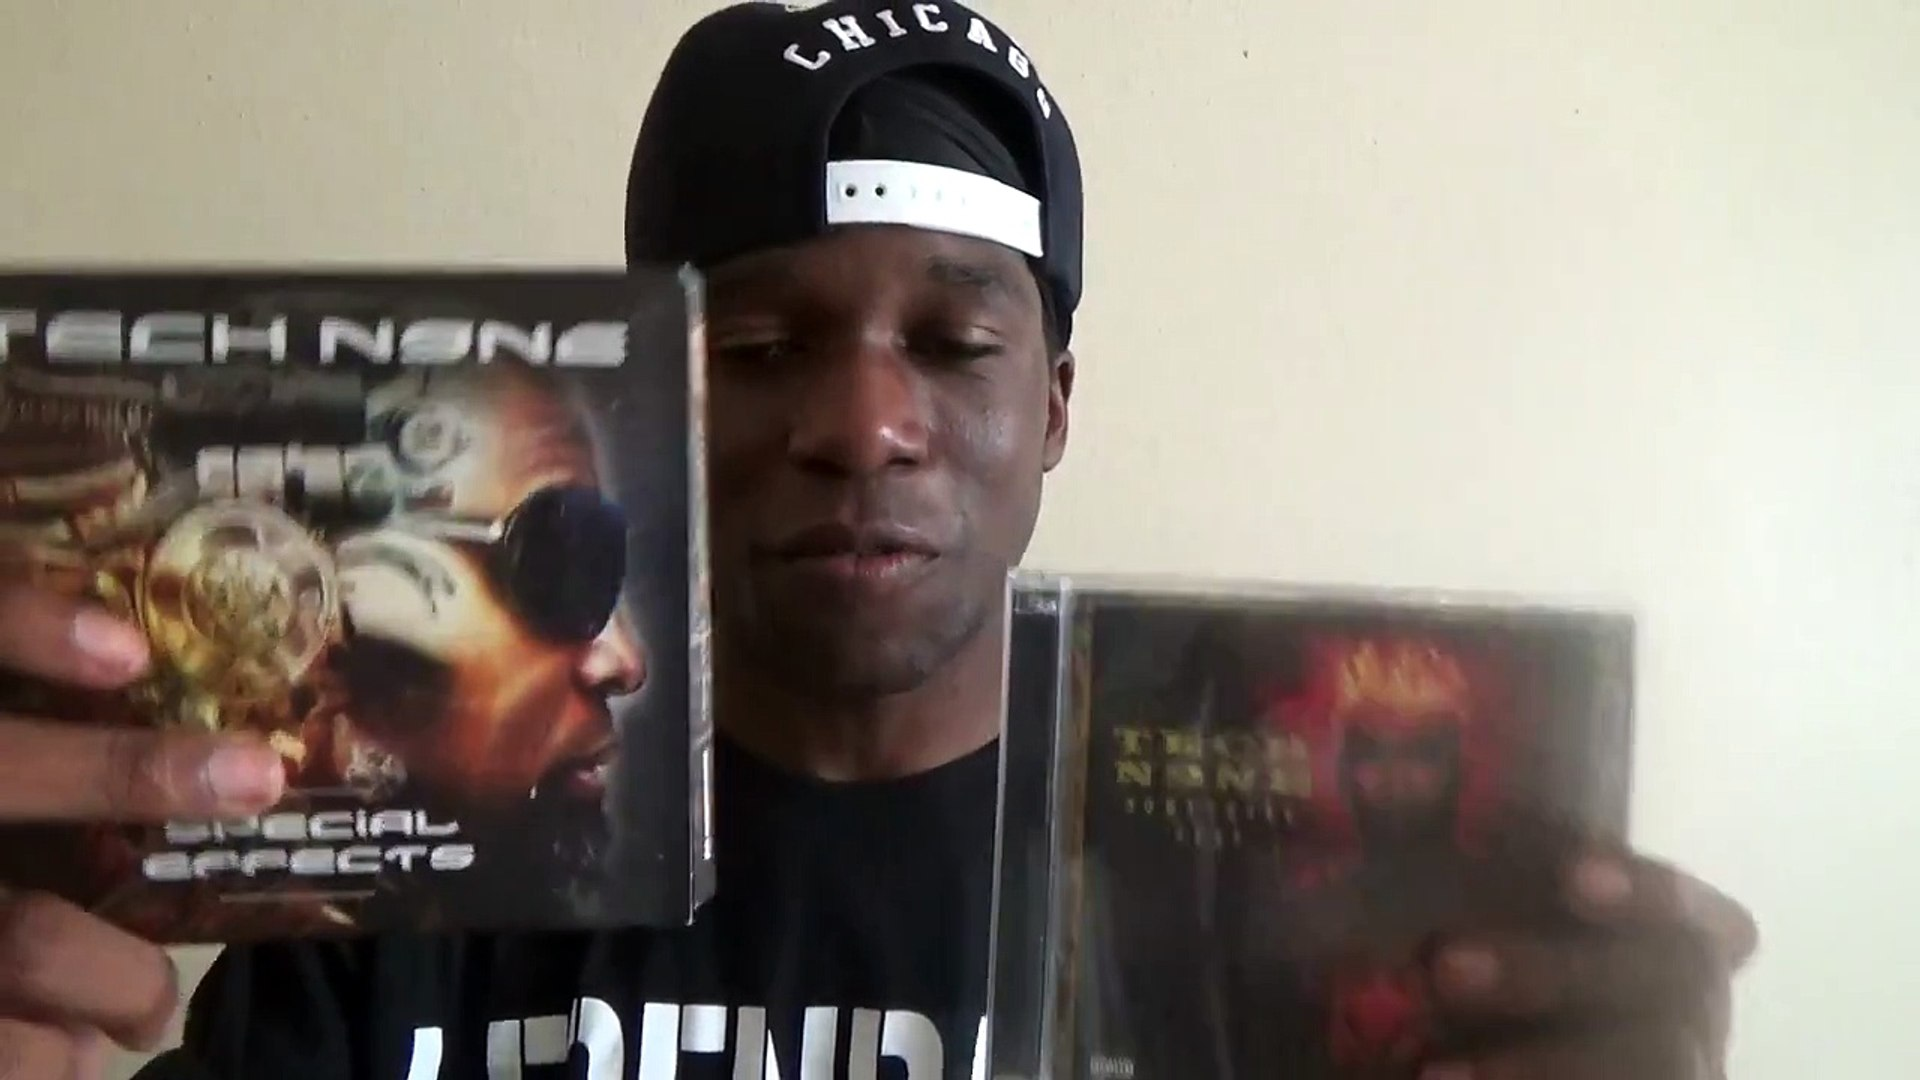 Tech N9ne - Something Else Album Review / Tech N9ne - Special Effects Album Review